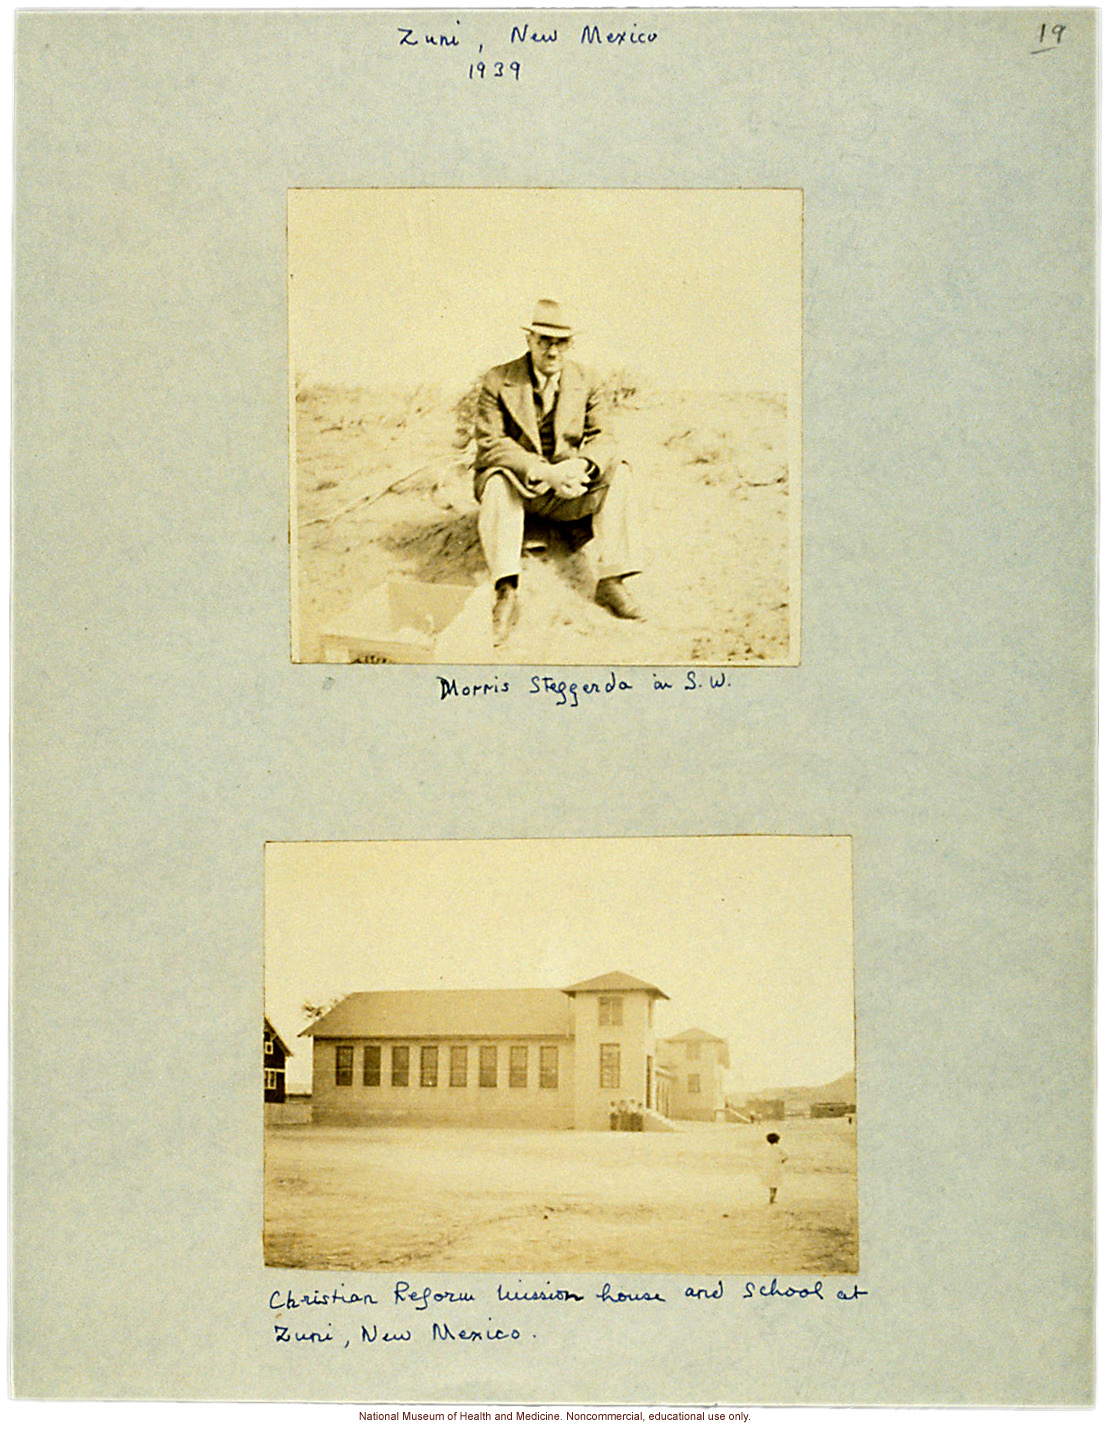 &quote;Morris Steggerda in S.W.&quote; and Christian Reform Mission House and School, Zuni, New Mexico